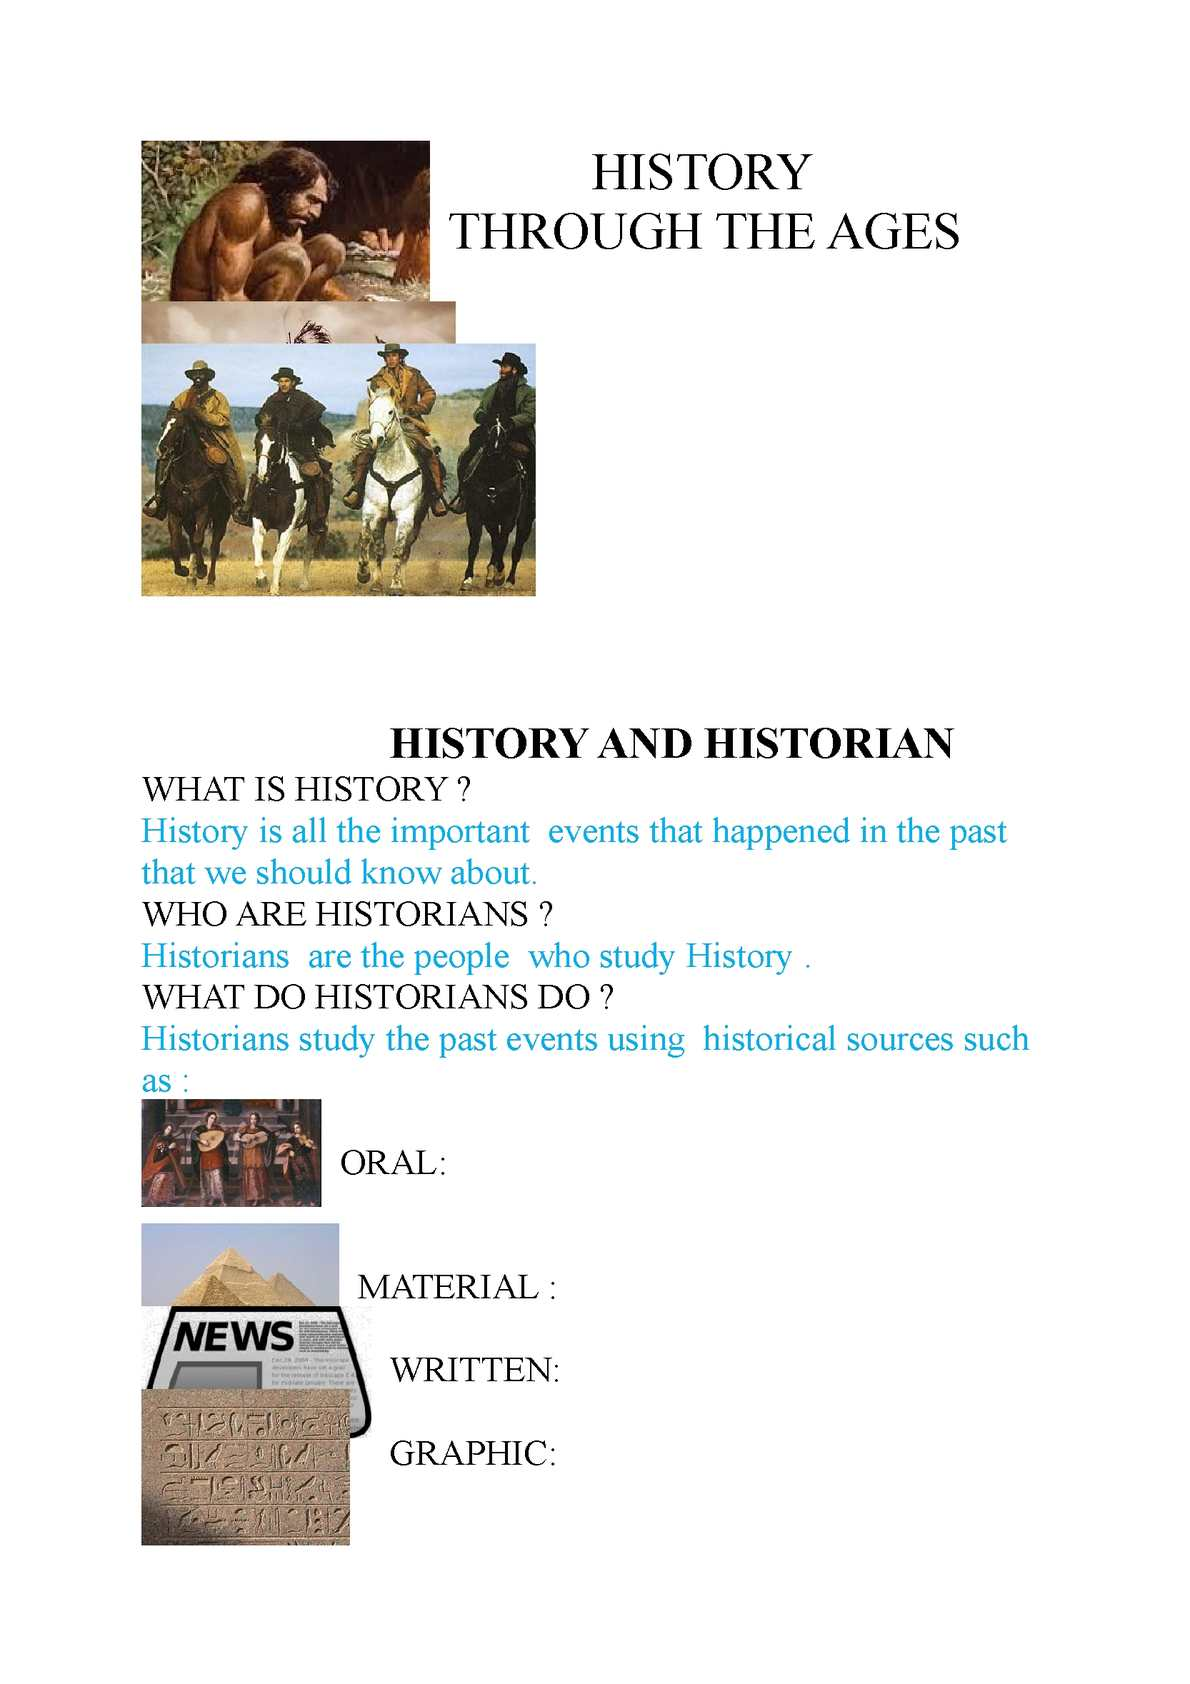 why is it important to study history